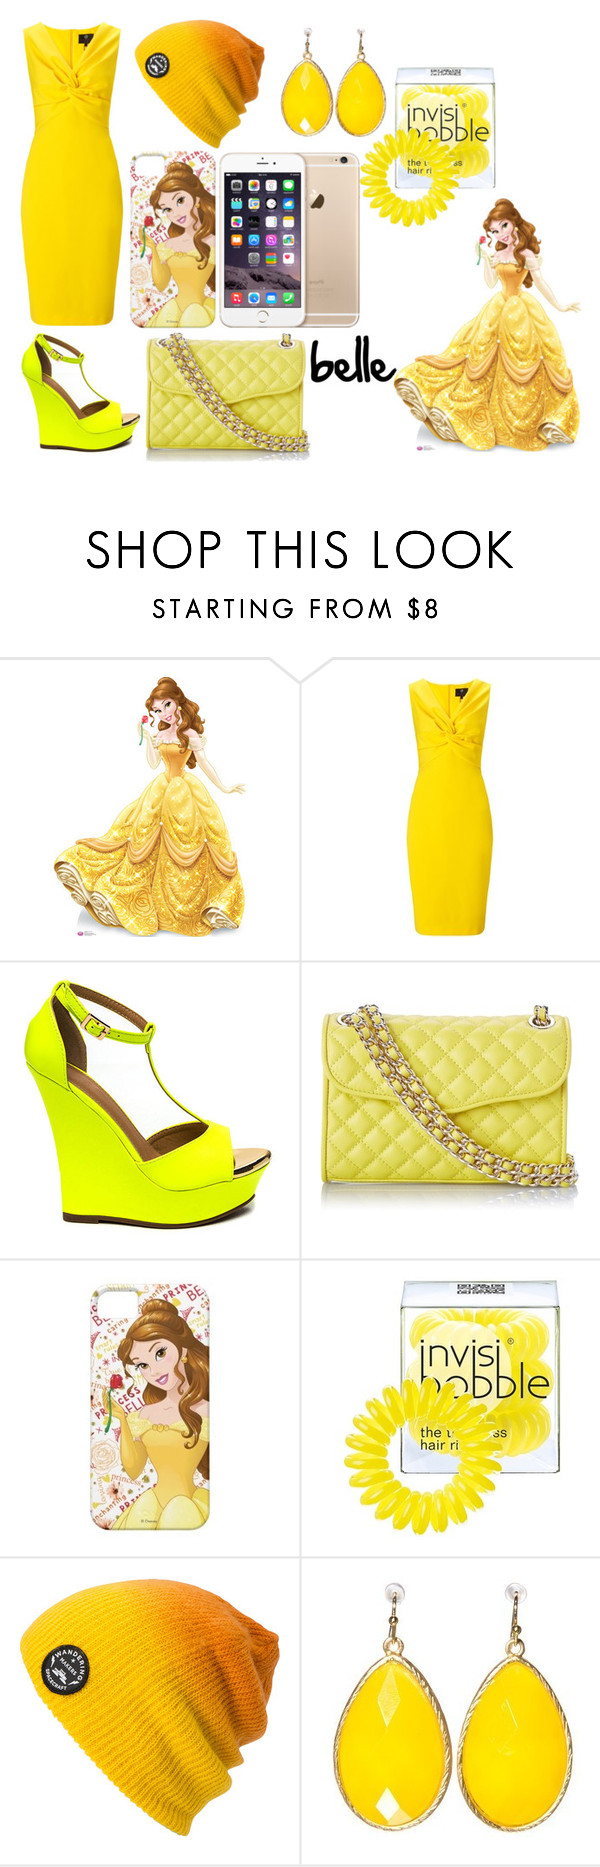 """belle look"" by cherlinanelemans on Polyvore featuring Ariella, Rebecca Minkoff, Invisibobble and Spacecraft"